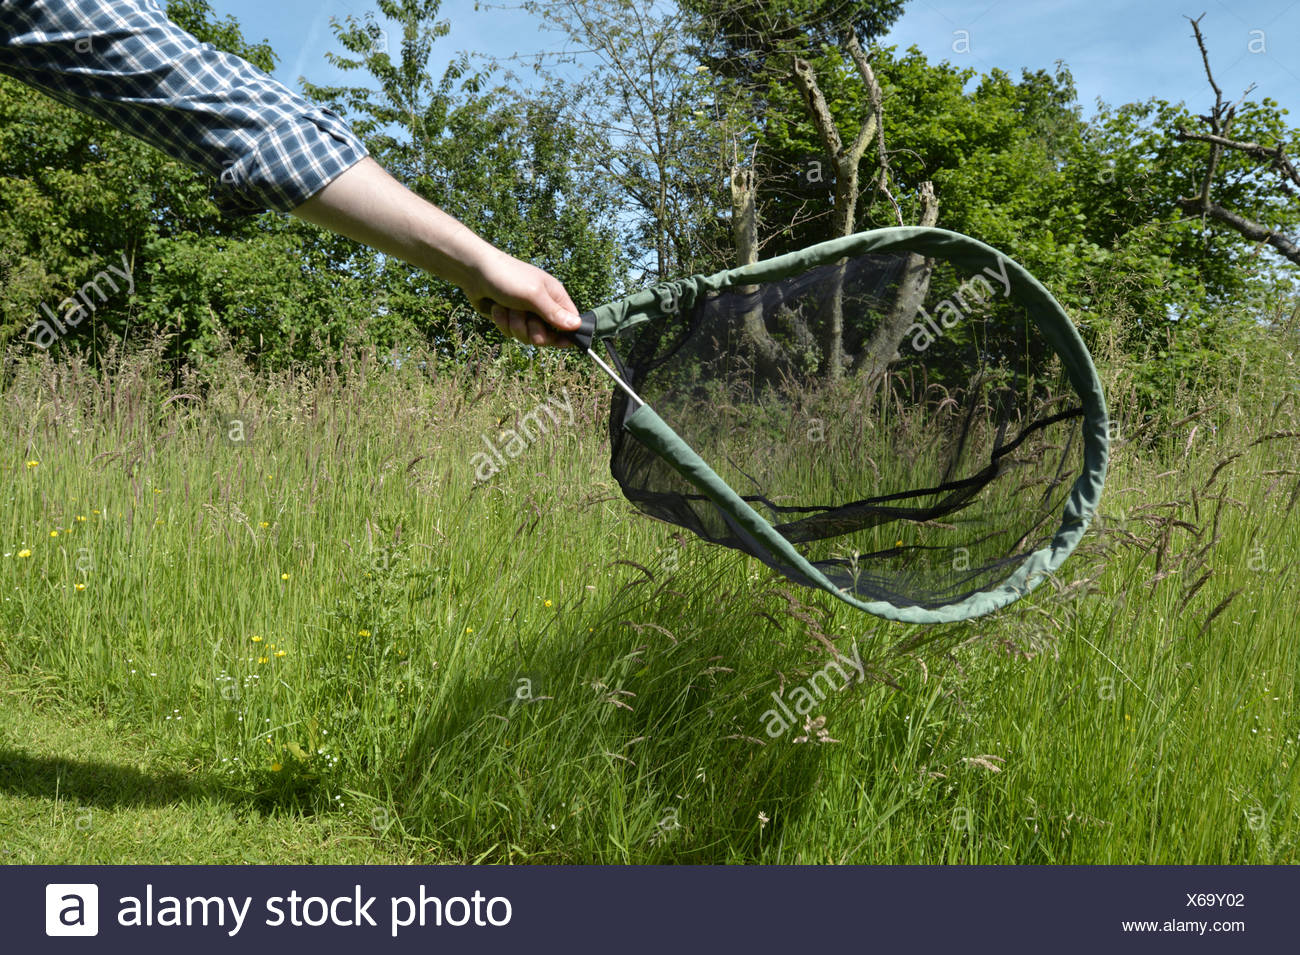 Using a butterfly net - Stock Image